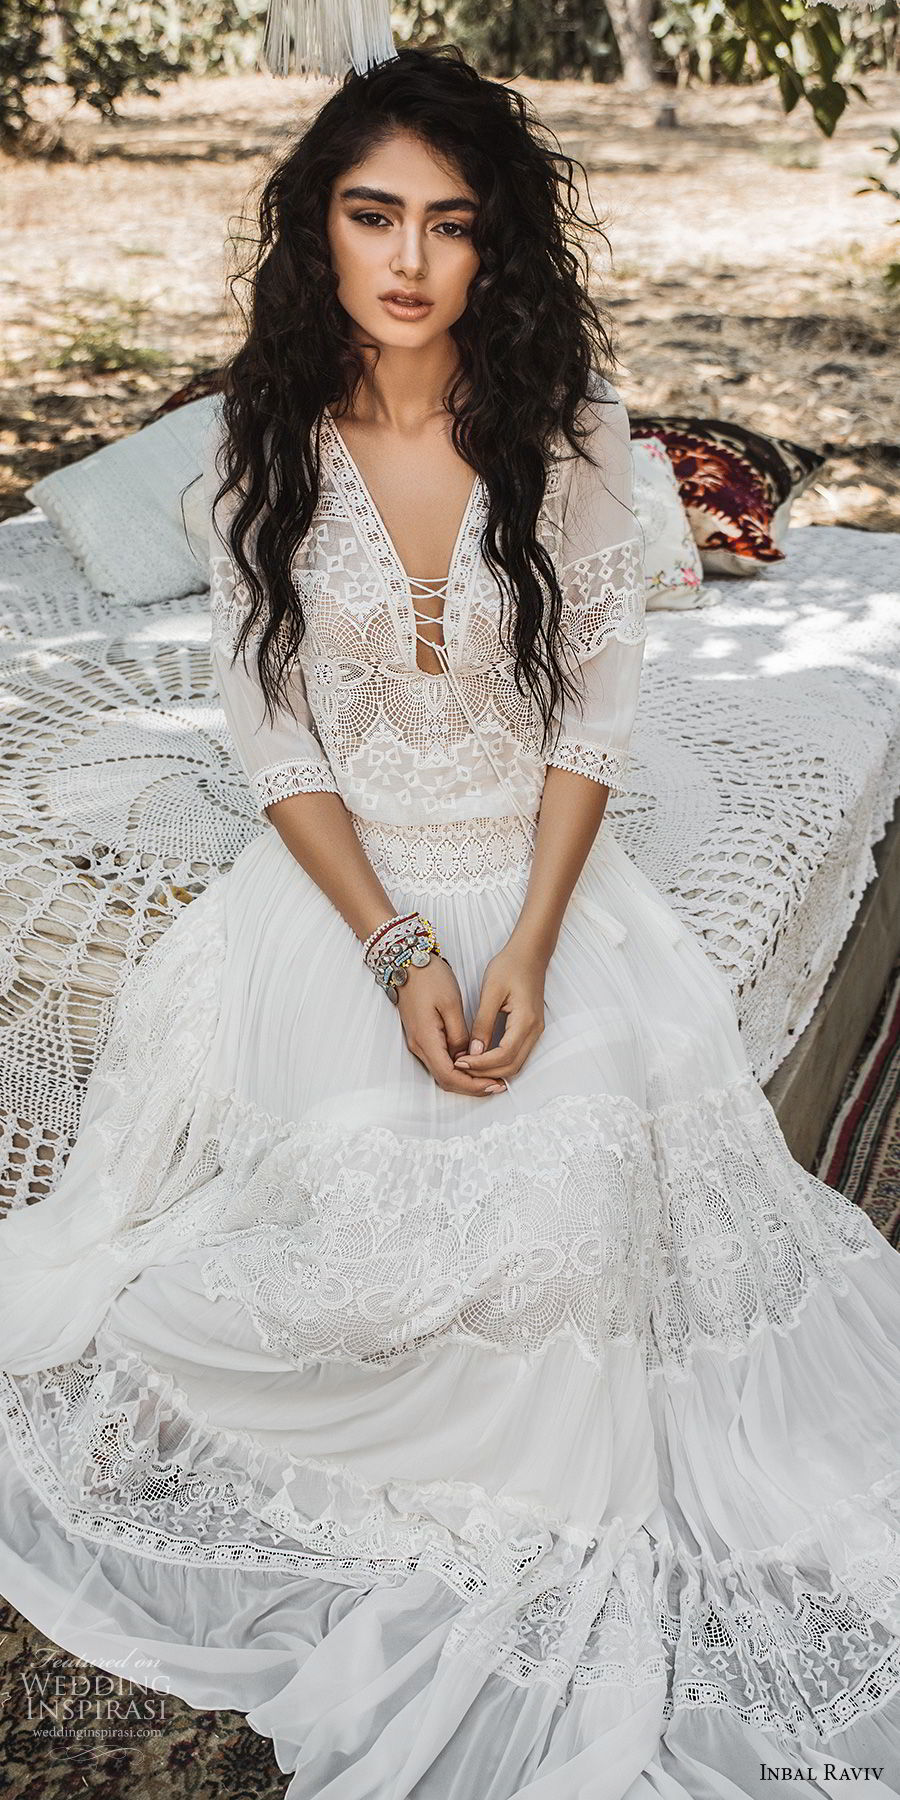 Gypsy Wedding Dresses.Average Cost Of American Gypsy Wedding Dress Lixnet Ag